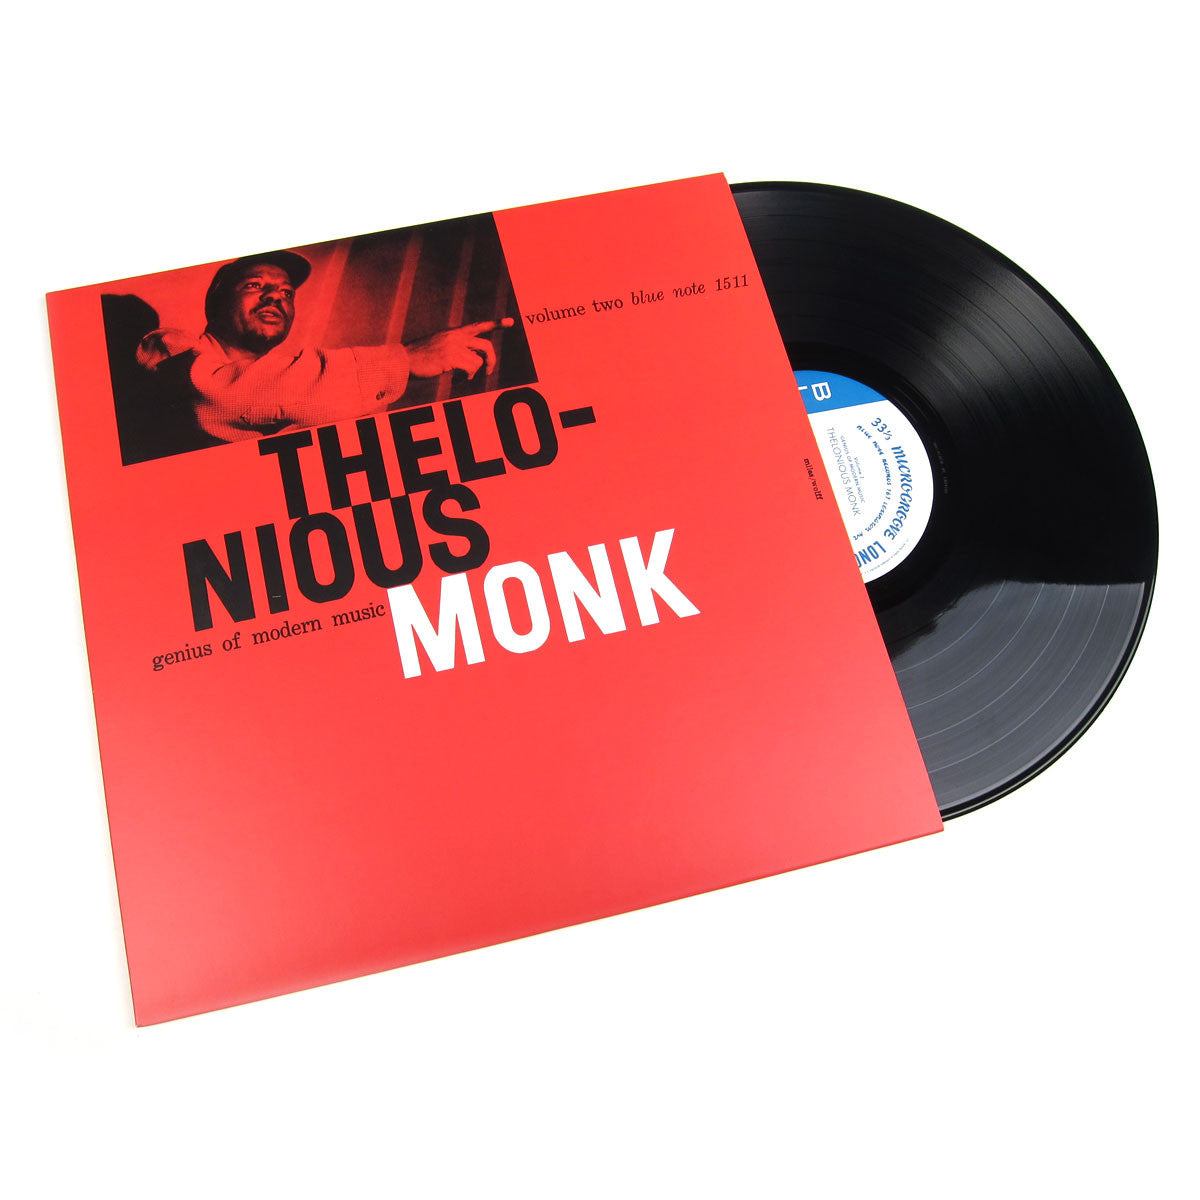 Thelonious Monk: Genius Of Modern Music Volume Two Vinyl LP